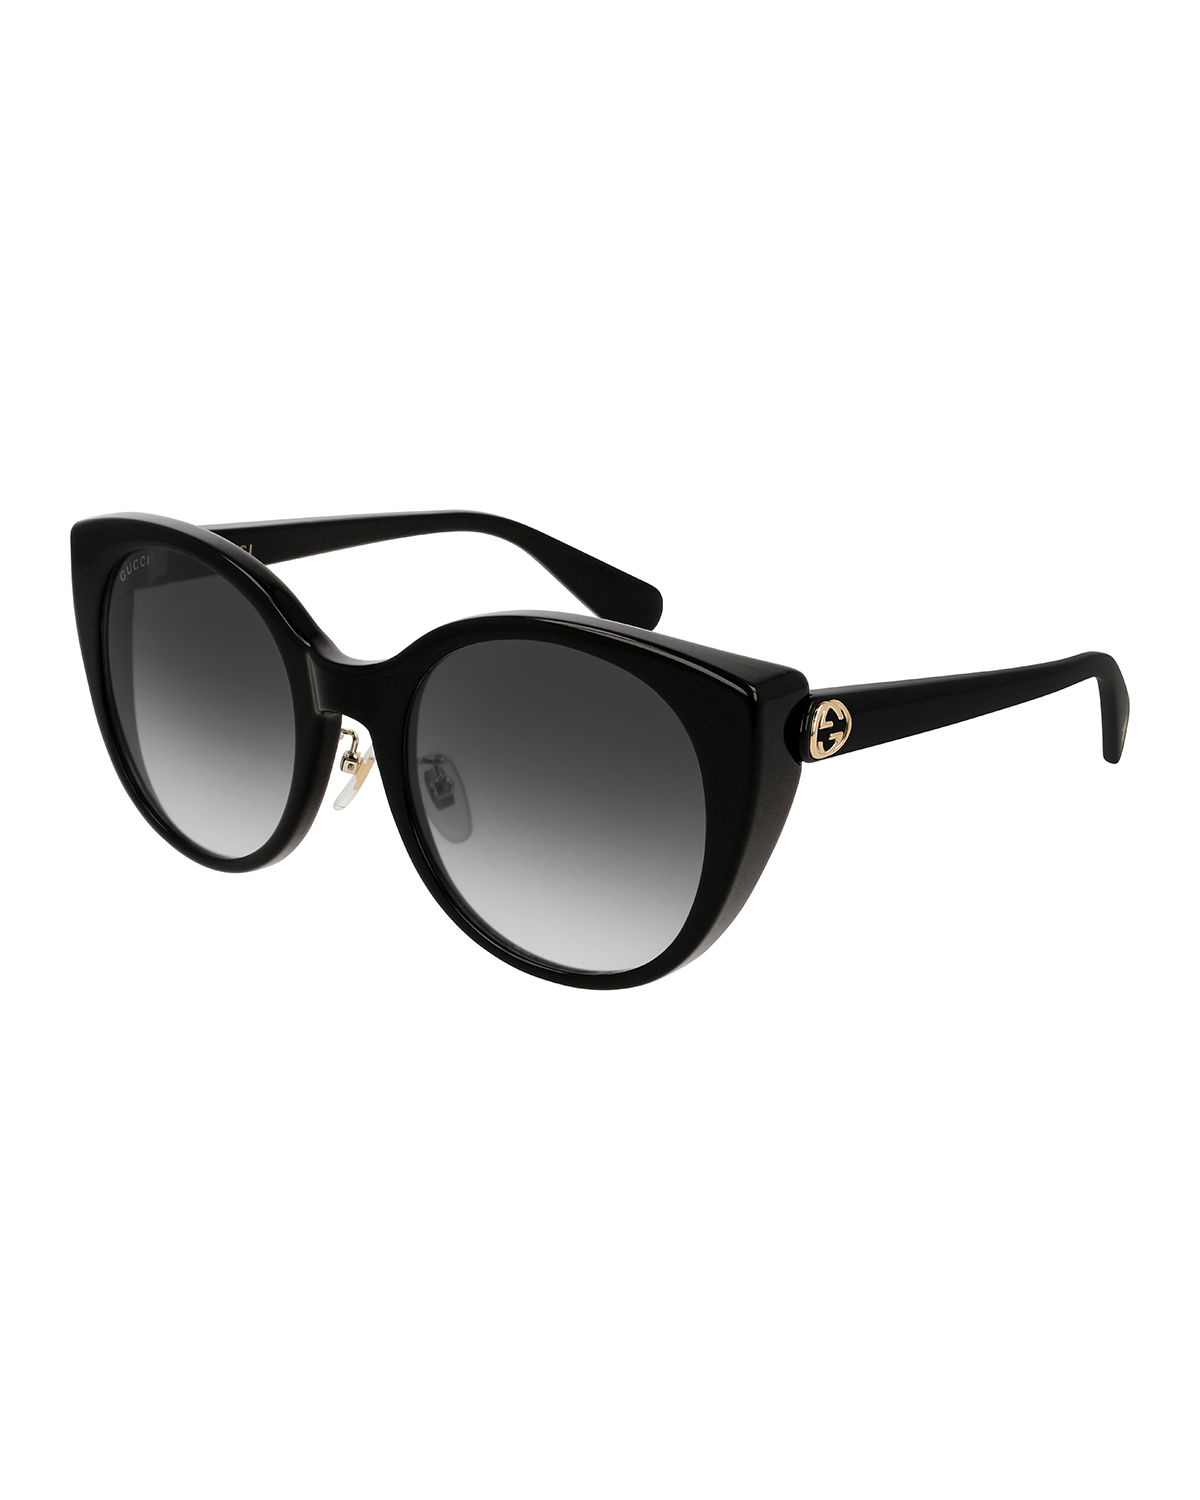 ab21c9545c Gucci Gradient Cat-Eye Sunglasses